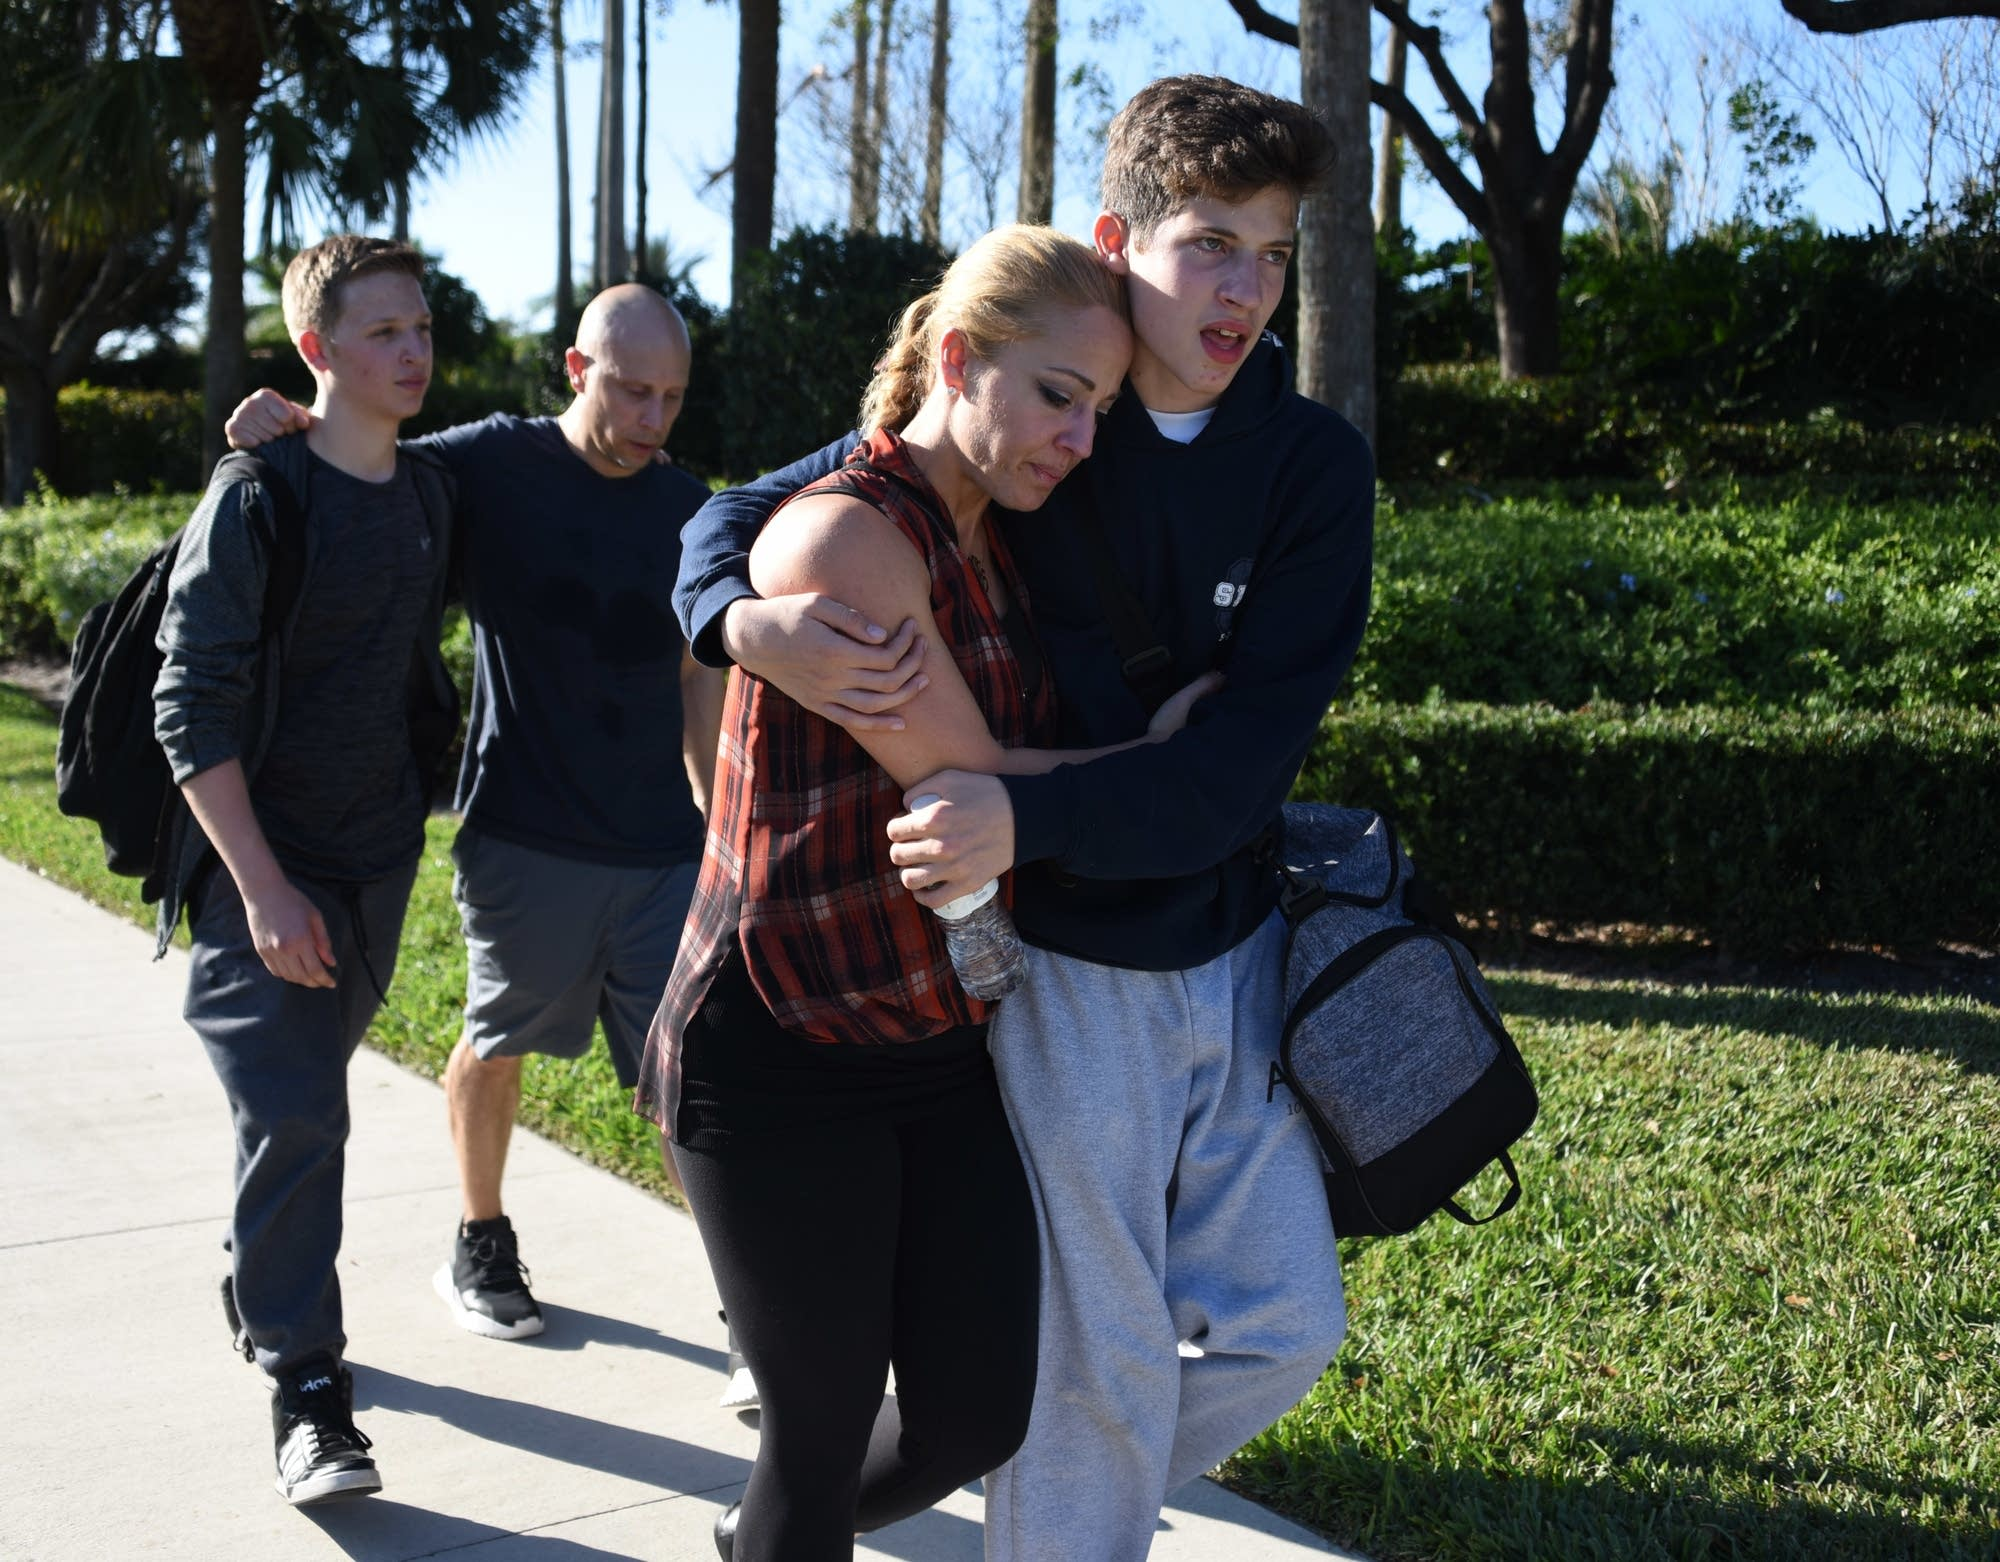 'Furious and heartbroken' Family that took in Florida shooting suspect speaks out